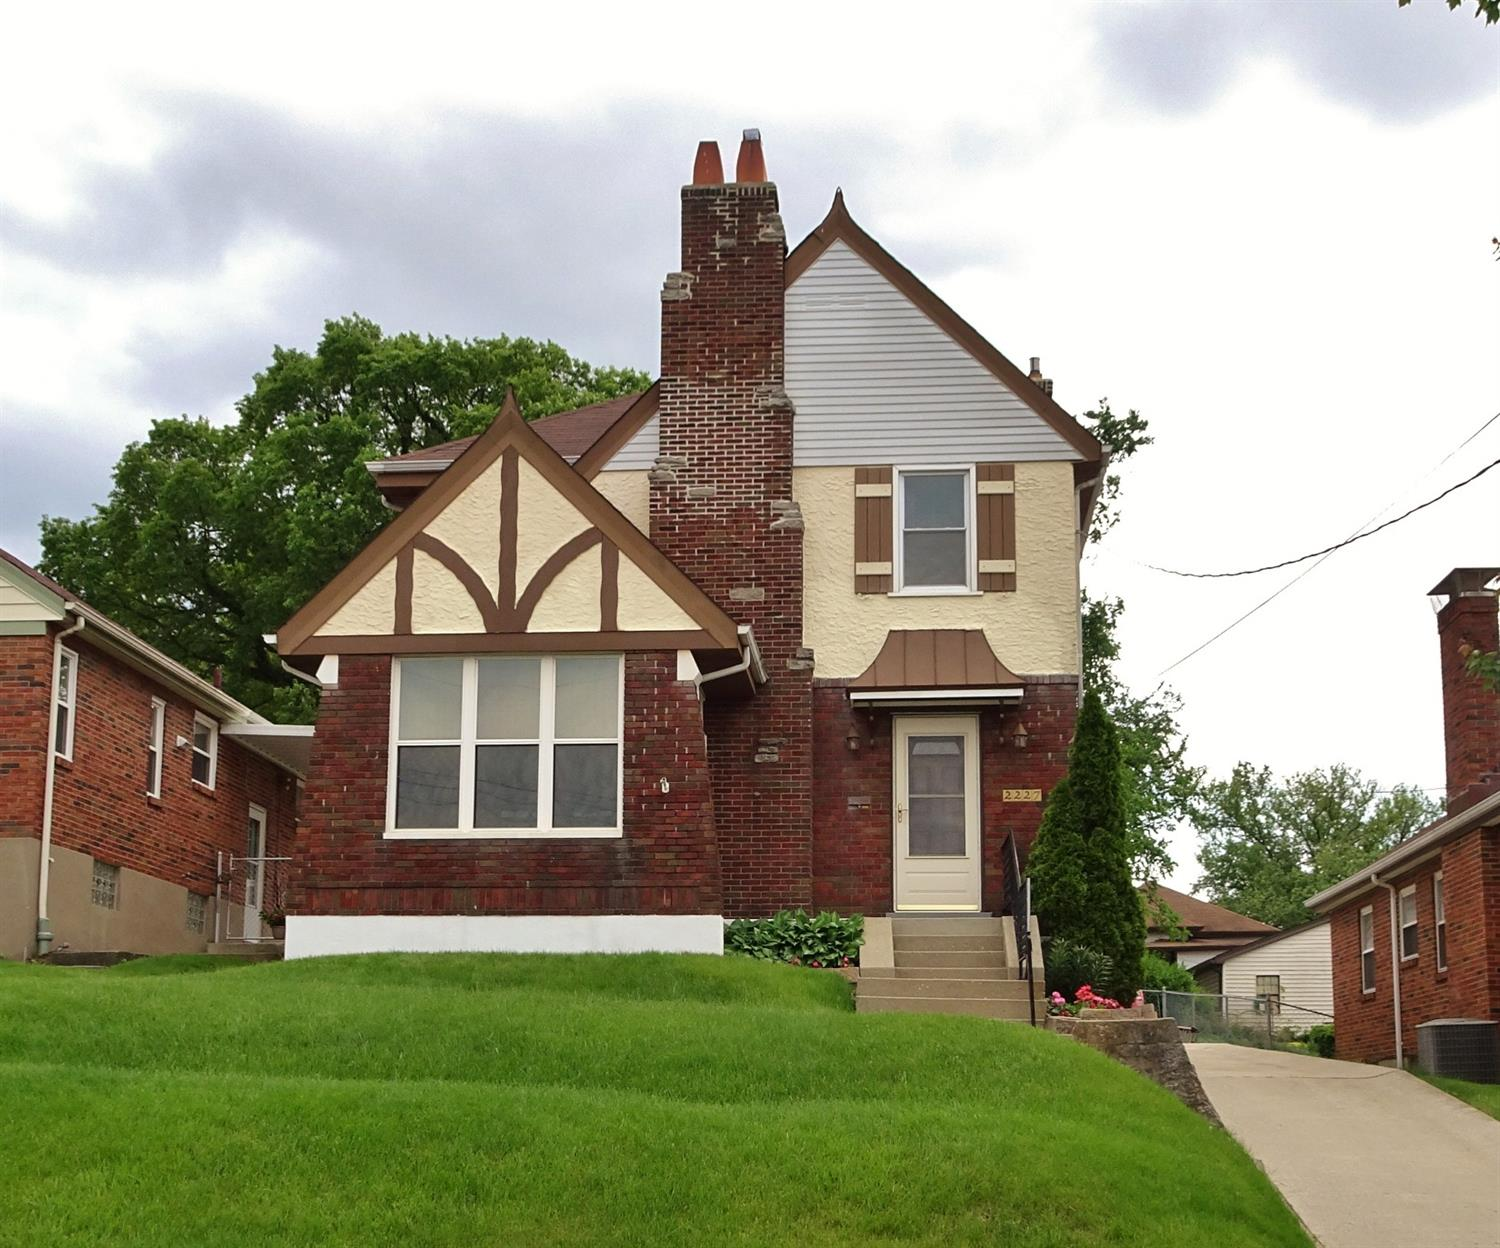 Photo 1 for 2227 Glenside Ave Norwood, OH 45212